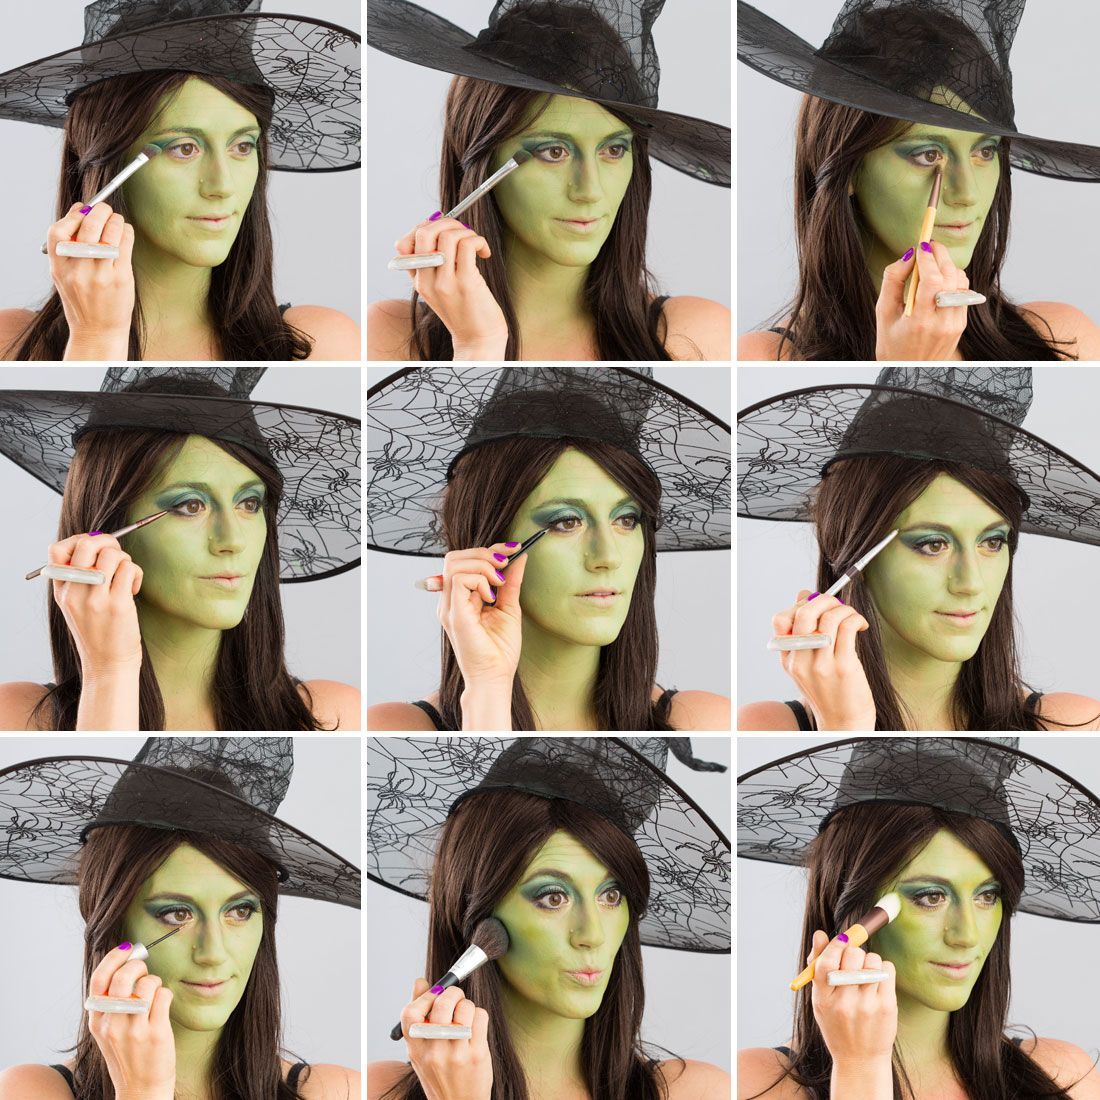 halloween easy makeup ideas diy adults with the special focus on the halloween witch makeup tutorial guide pictures a step by step easy halloween makeup diy - How To Look Like A Witch For Halloween